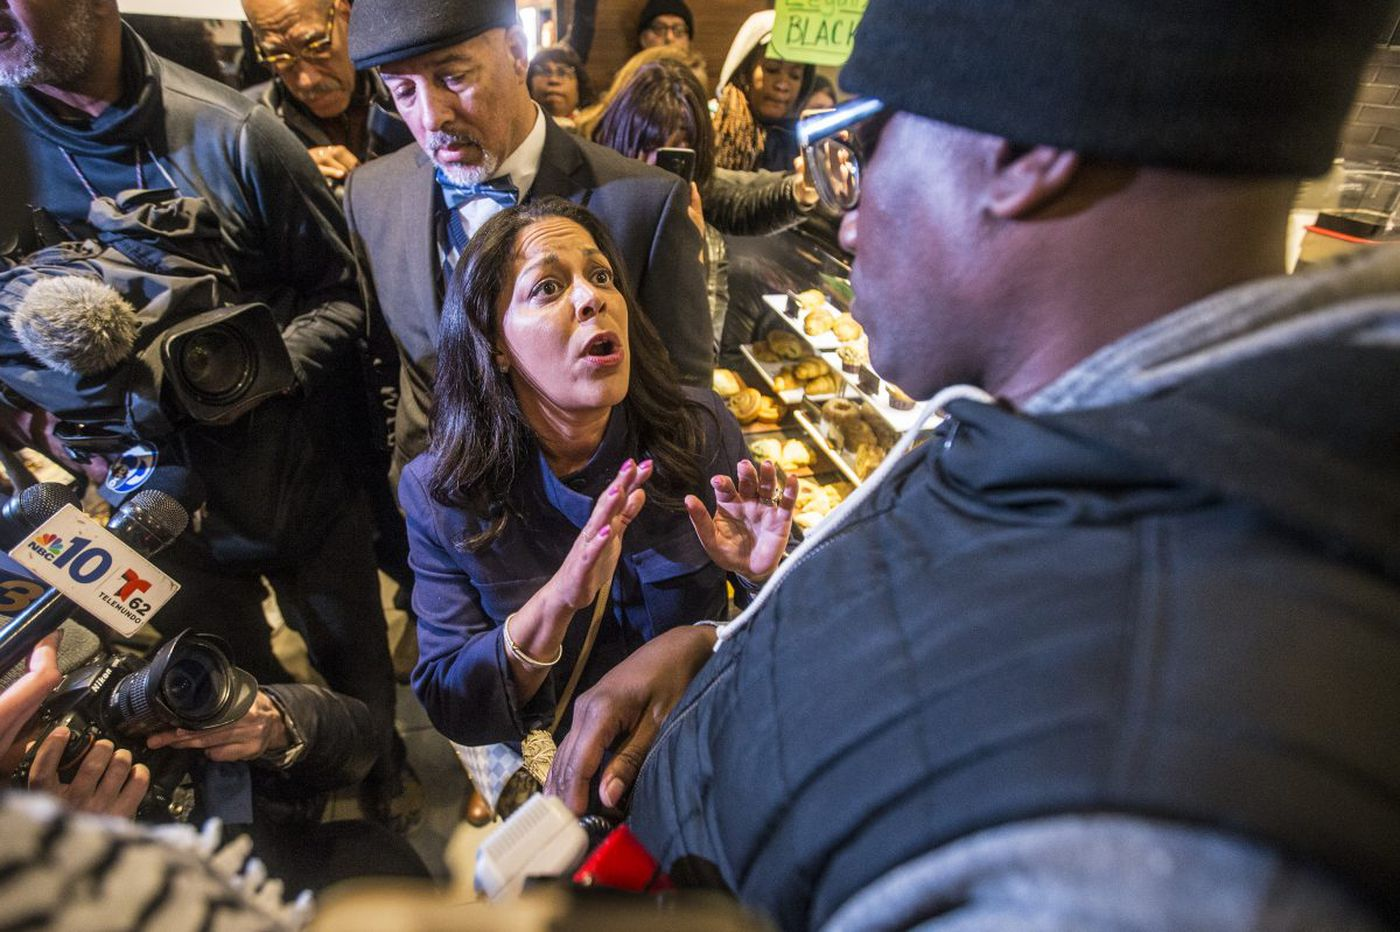 Starbucks, fire the employee who called the police on black men | Jenice Armstrong